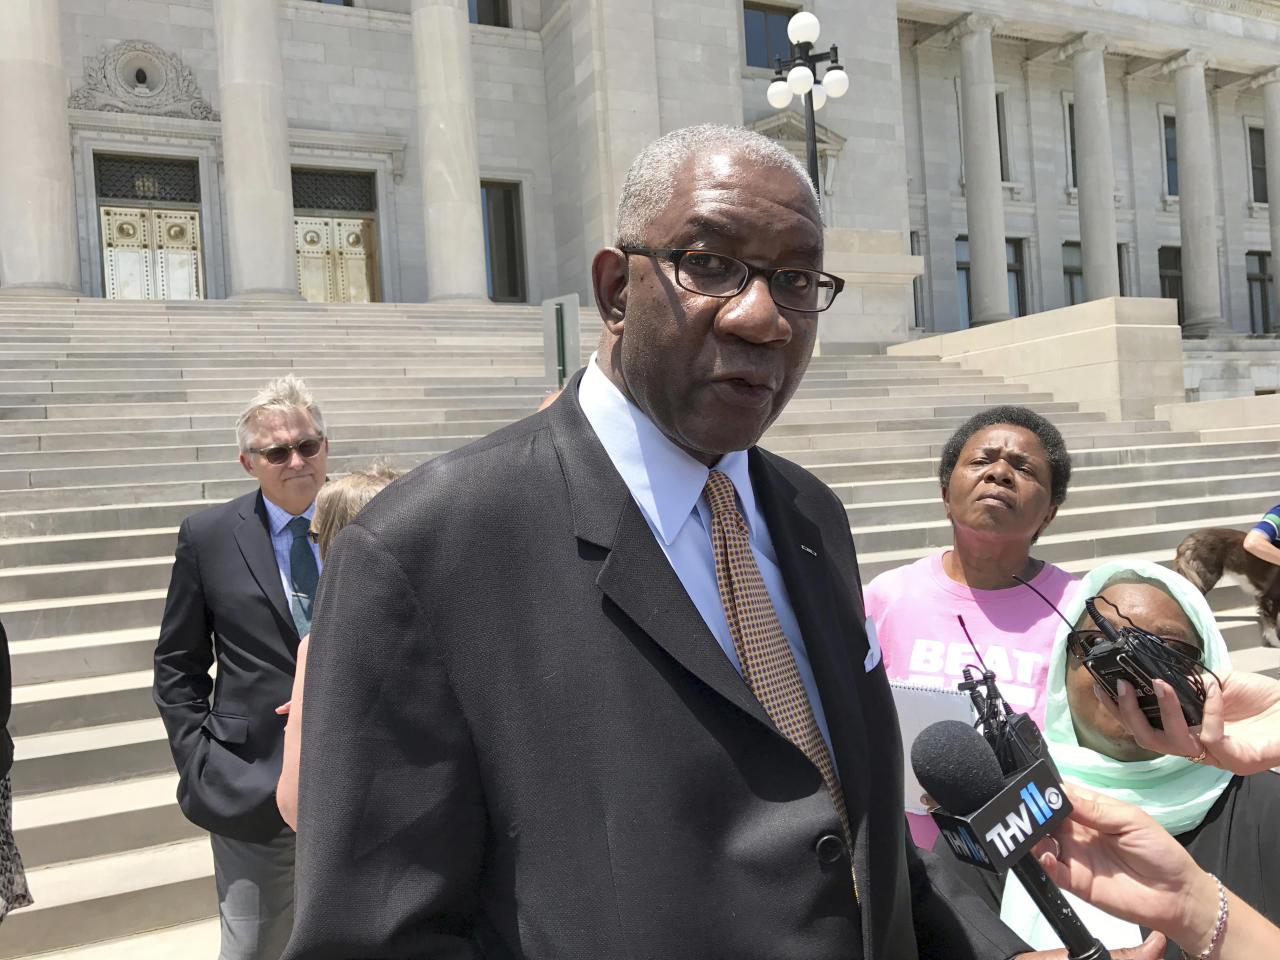 CORRECTS SPELLING OF LAST NAME TO GRIFFEN INSTEAD OF GRIFFIN - FILE - In this June 9, 2017 photo, Circuit Judge Wendell Griffen speaks at a news conference on the steps of the Arkansas State Capitol in Little Rock, Ark. The Arkansas Supreme Court on Thursday, June 21, 2018, cleared the way for the state to launch its medical marijuana program, reversing and dismissing Griffen's ruling that prevented officials from issuing the first licenses for businesses to grow the drug. Griffen ruled in March that the state's process for awarding medical marijuana cultivation licenses was unconstitutional. (AP Photo/Andrew DeMillo, File)